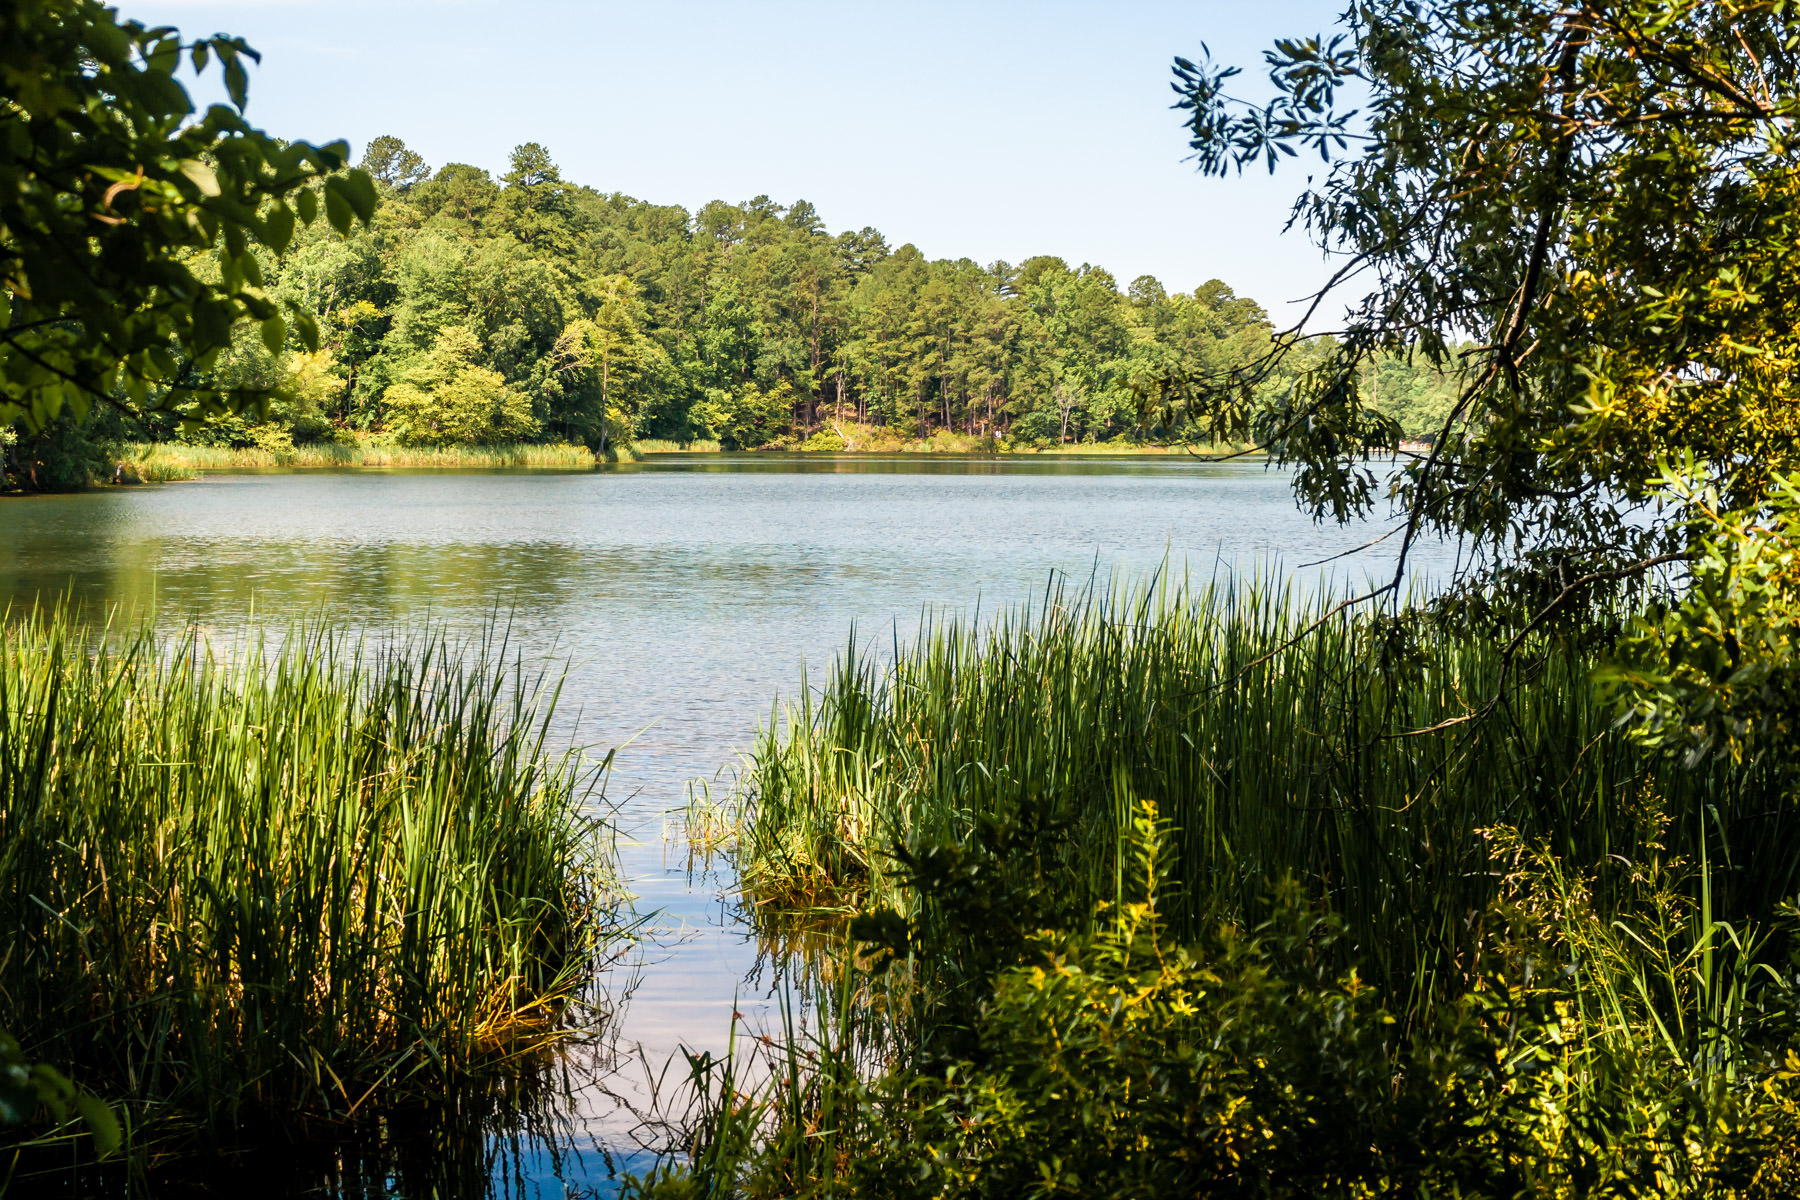 Reeds and trees encroach upon the lake at Tyler State Park, Texas.